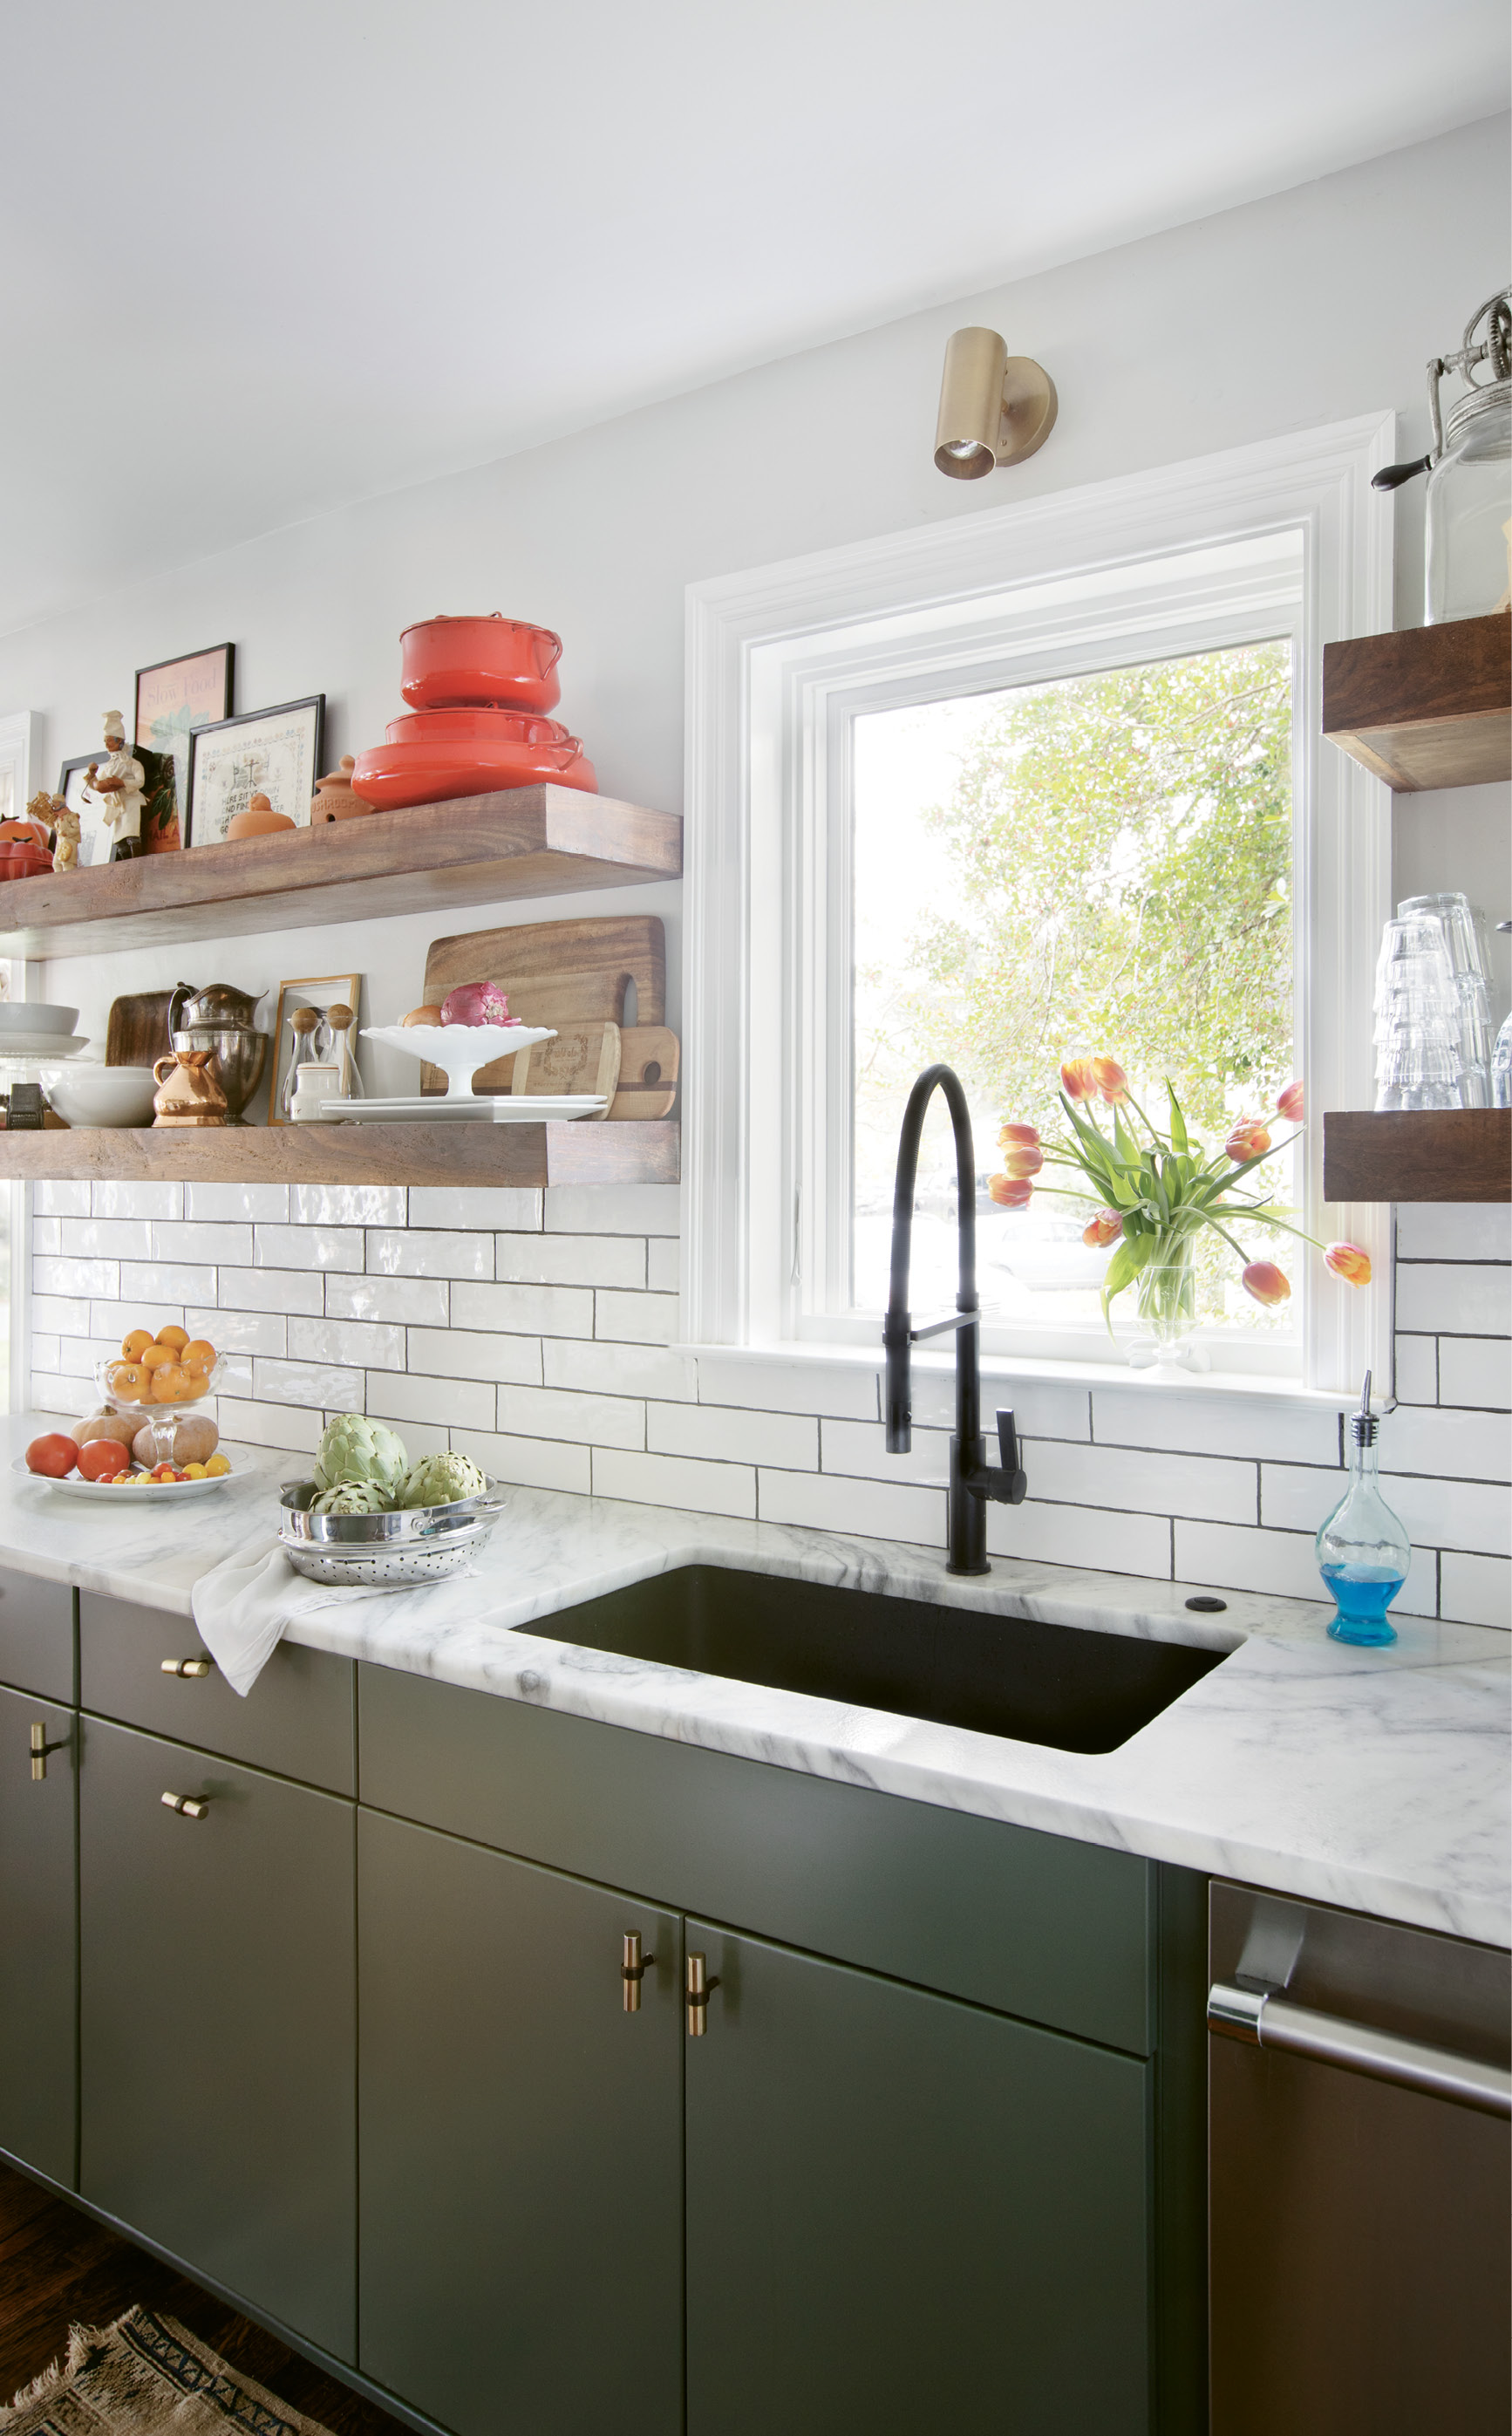 "WHERE THE MAGIC HAPPENS: Thanks to the removal of a wall between the kitchen and living room, cooking for guests is no longer claustrophobic. The refreshed space makes good use of local materials, including the faucet from Molufs and painted concrete backsplash from Palmetto Tile. ""Tile can really make a space without being too distracting,"" Carrie notes. Quartzite countertops, flat-face cabinets, and hardware from Anthropologie add to the clean look, while a rotating display of objects provides the finishing touch. ""We love the open shelves, and I find I'm always rearranging and shuffling things around; it is really inspiring to see fresh produce and artwork in the kitchen,"" she continues."